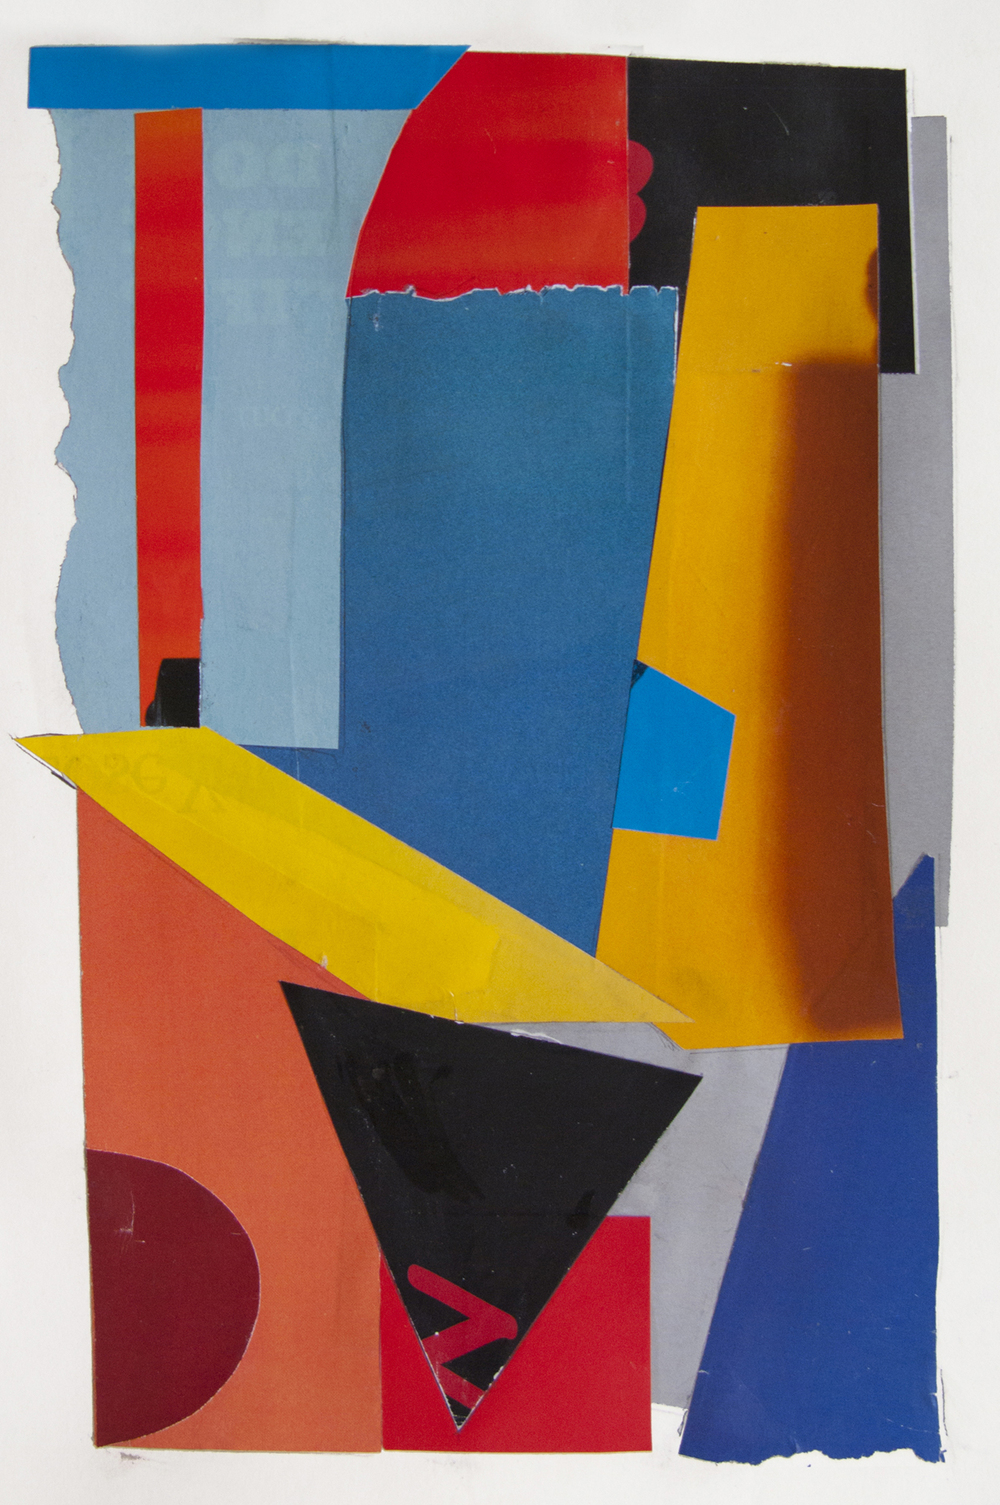 N , collage, 2012